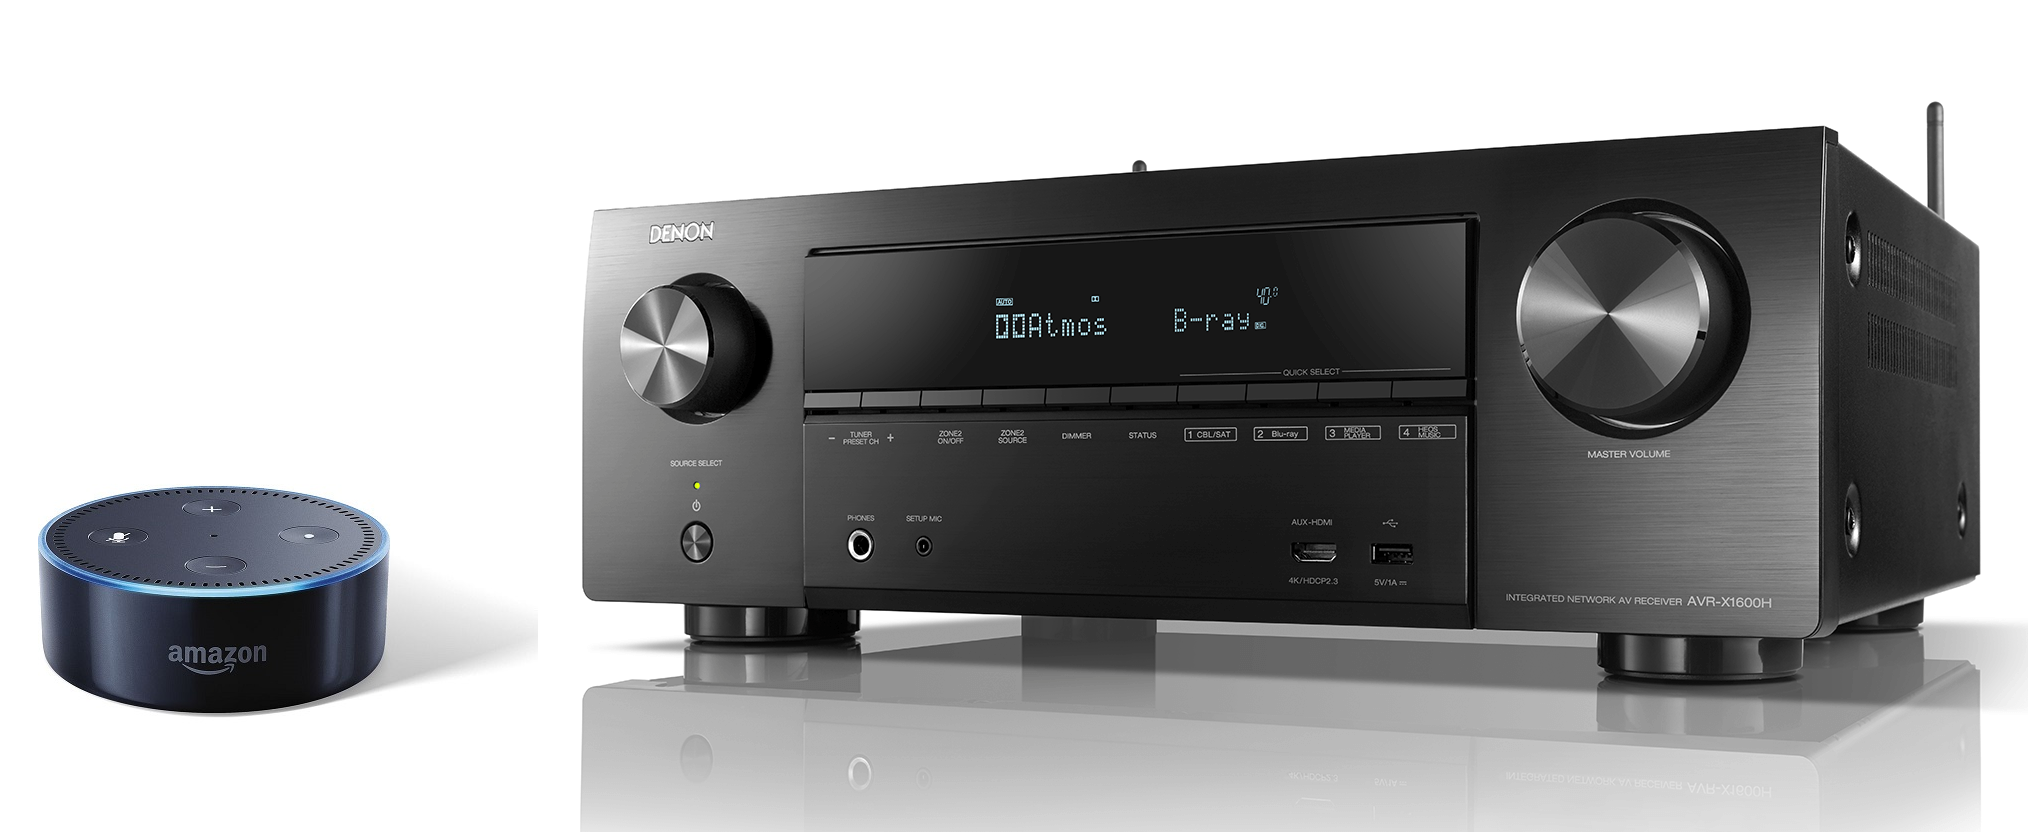 Ampli Denon AVR-X1600H | Anh Duy Audio